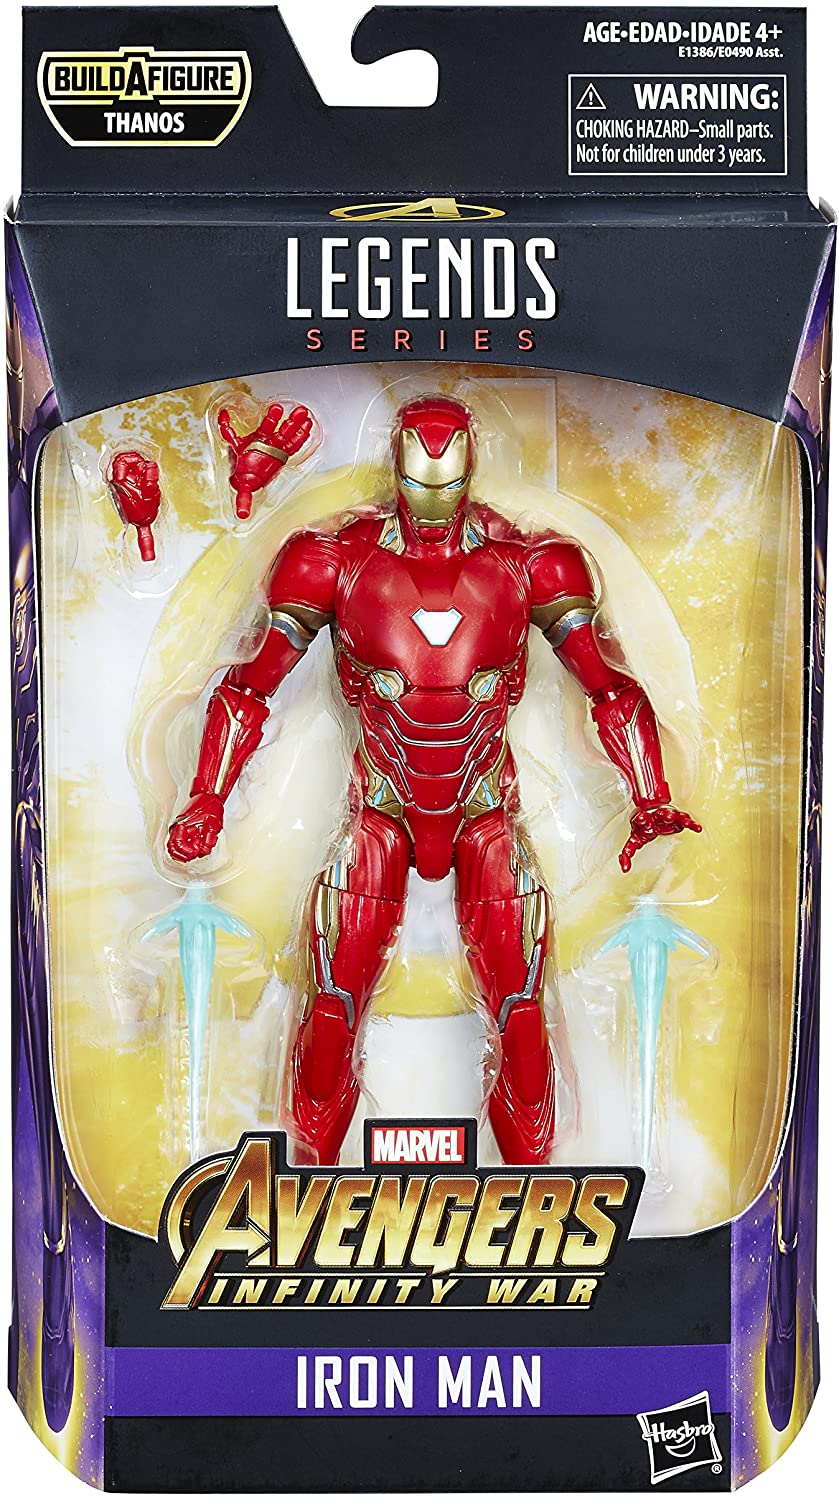 Marvel Legends - Avengers: Infinity War - Thanos (Infinity War) BAF - Iron Man Action Figure (E1386)